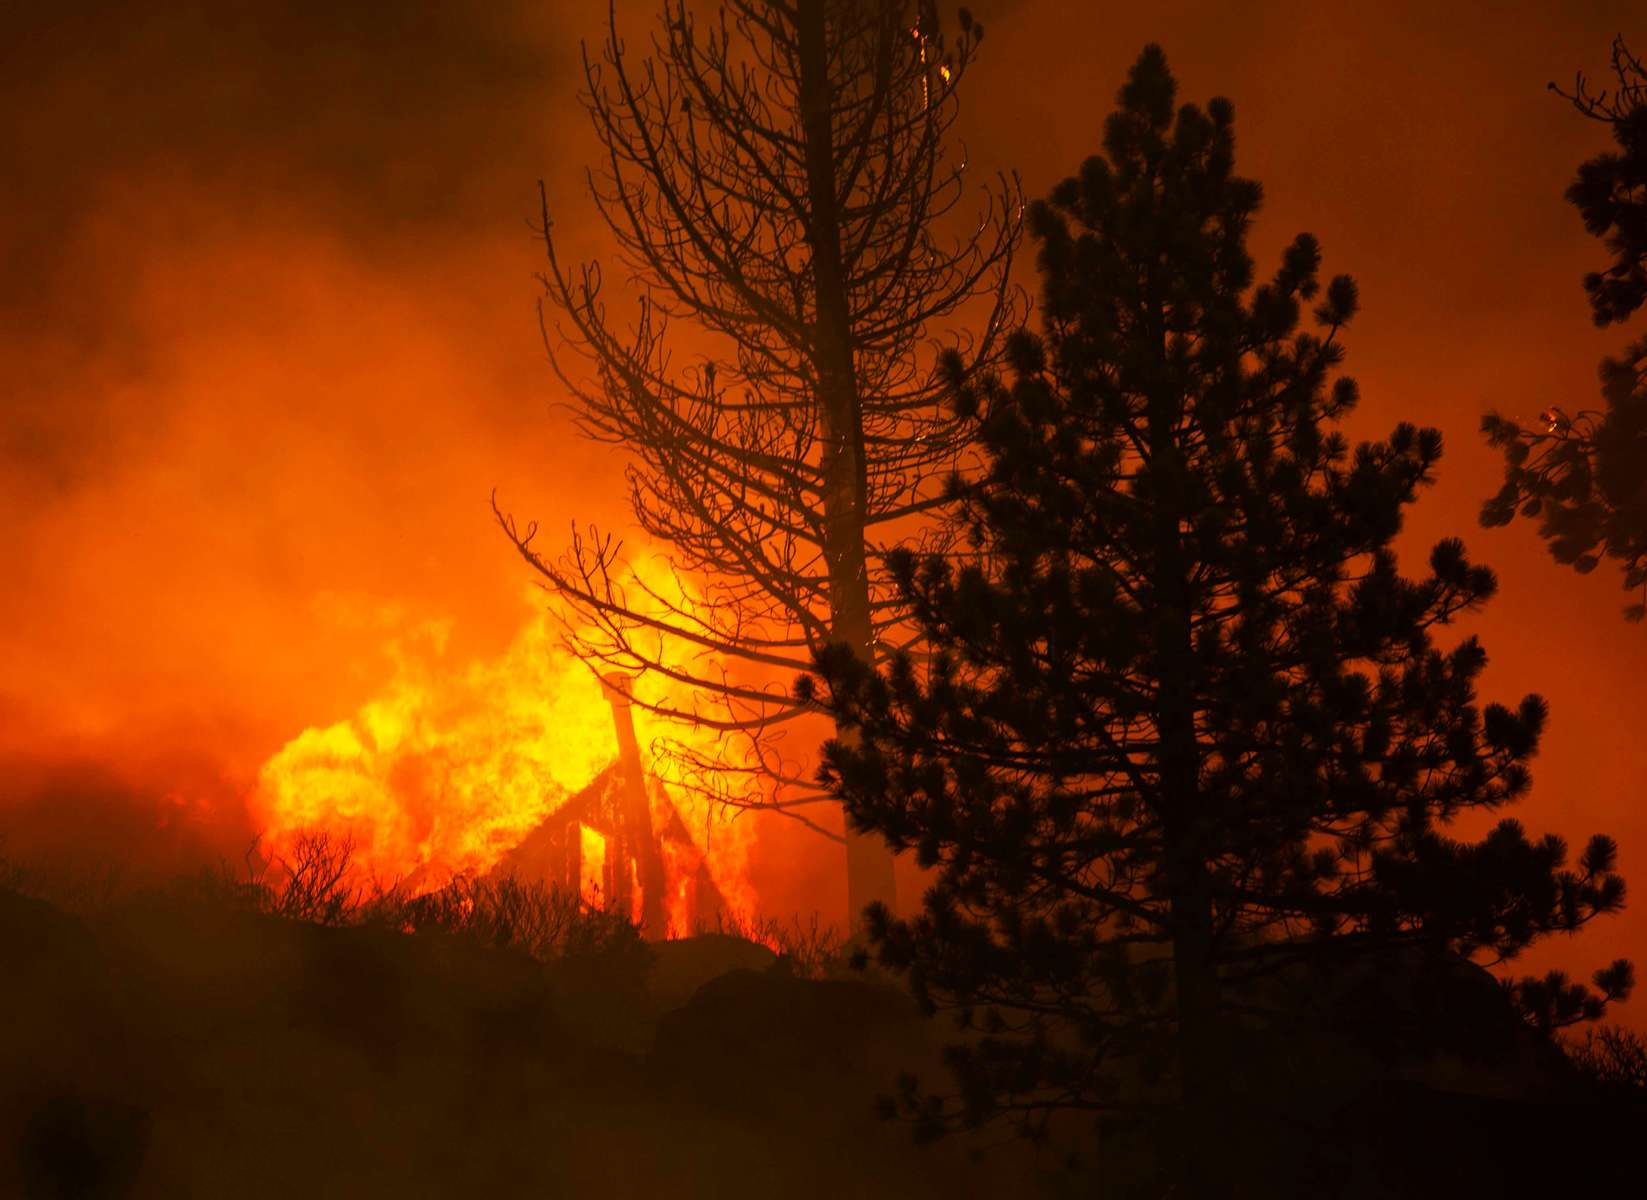 A structure burns as the Caldor fire rages on August 30, 2021, in Echo summit, California. The Caldor Fire has burned almost 200.000 acres, destroyed over 660 structures and is currently 16 percent contained.